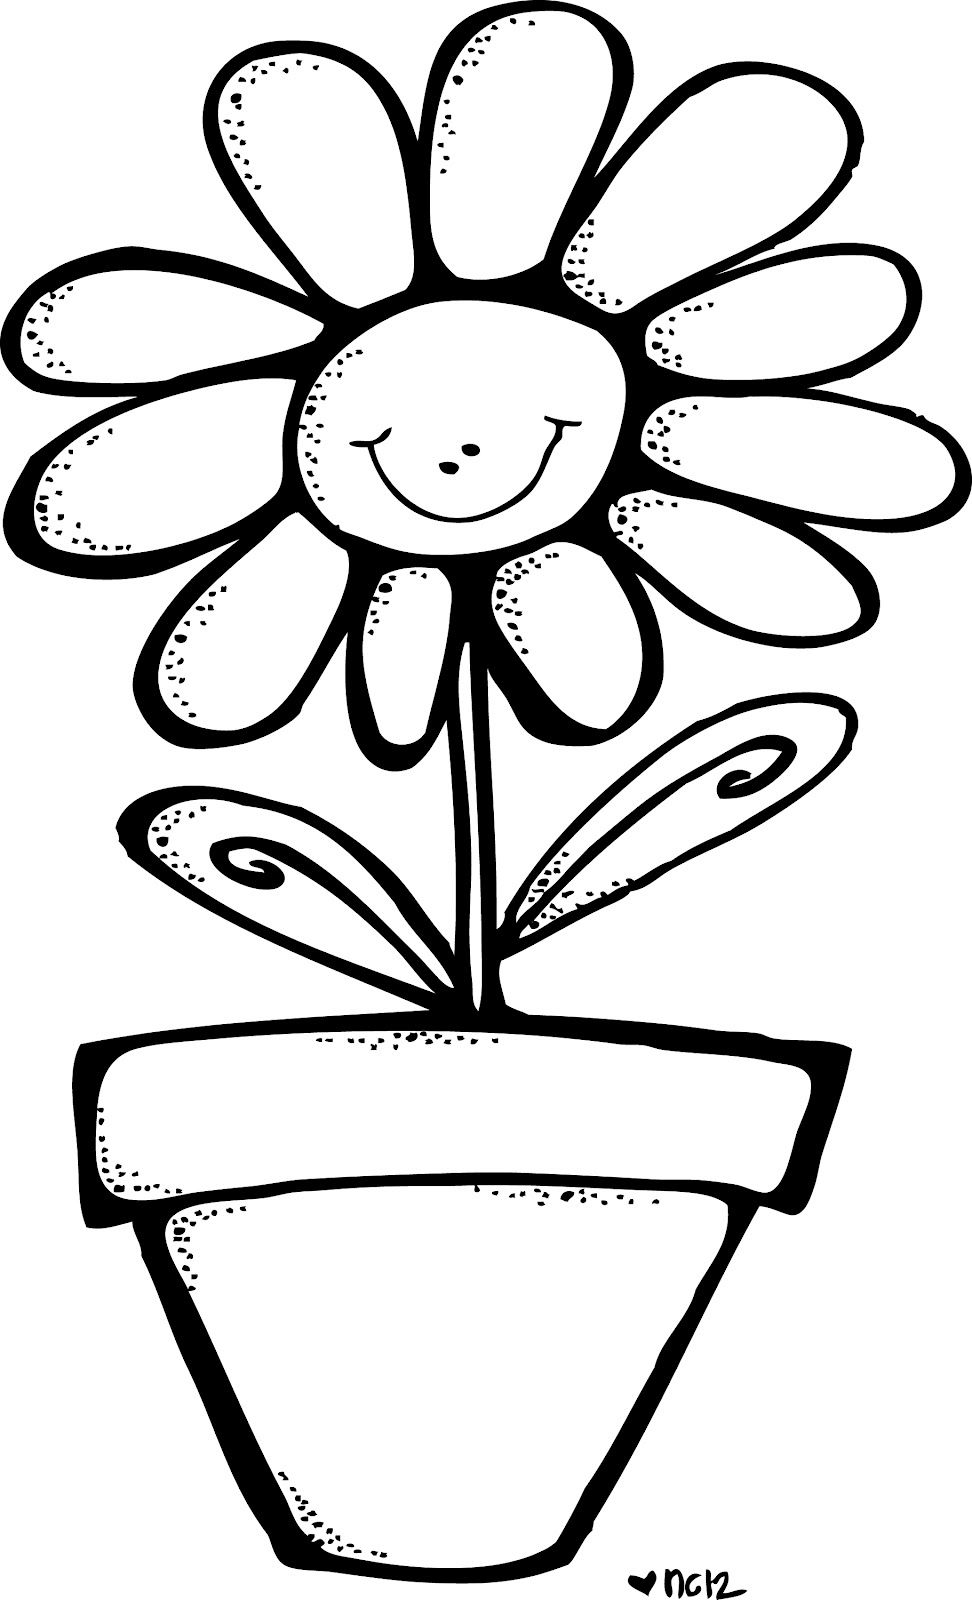 melonheadz some days we just need to smile color little ones rh pinterest co uk springtime clipart black and white spring season clipart black and white